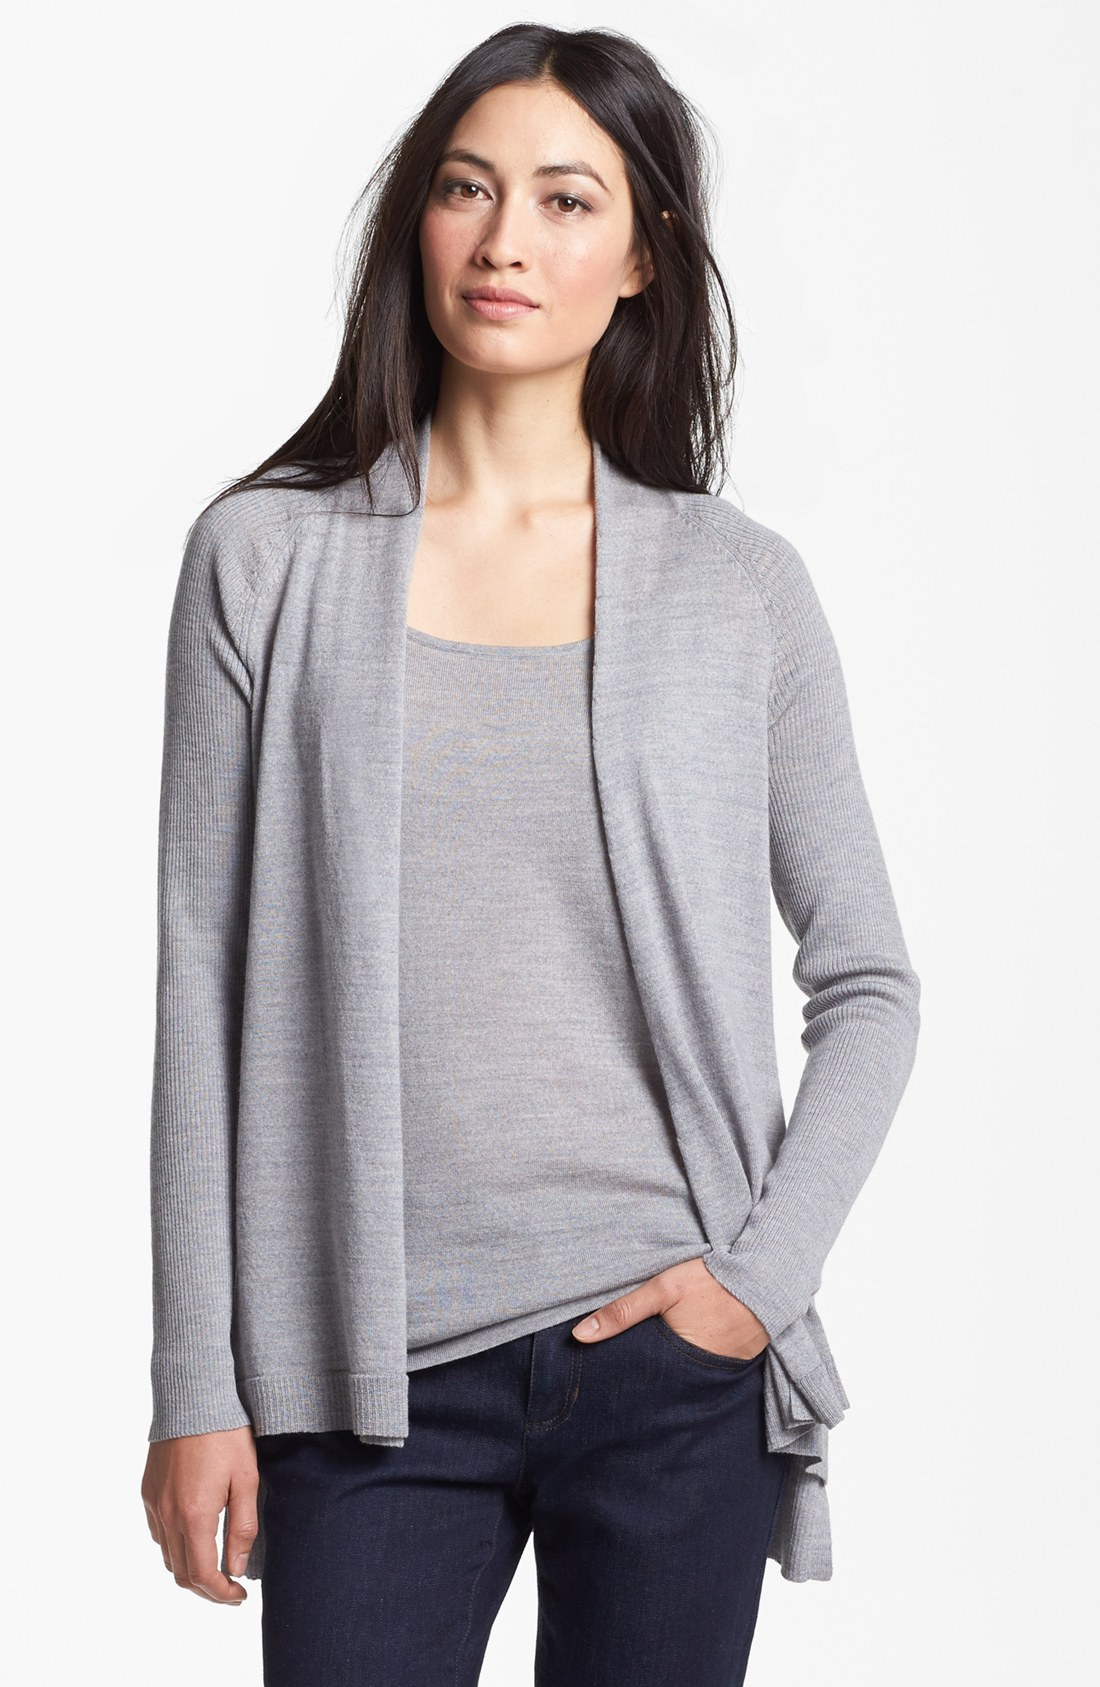 General information about women cardigans